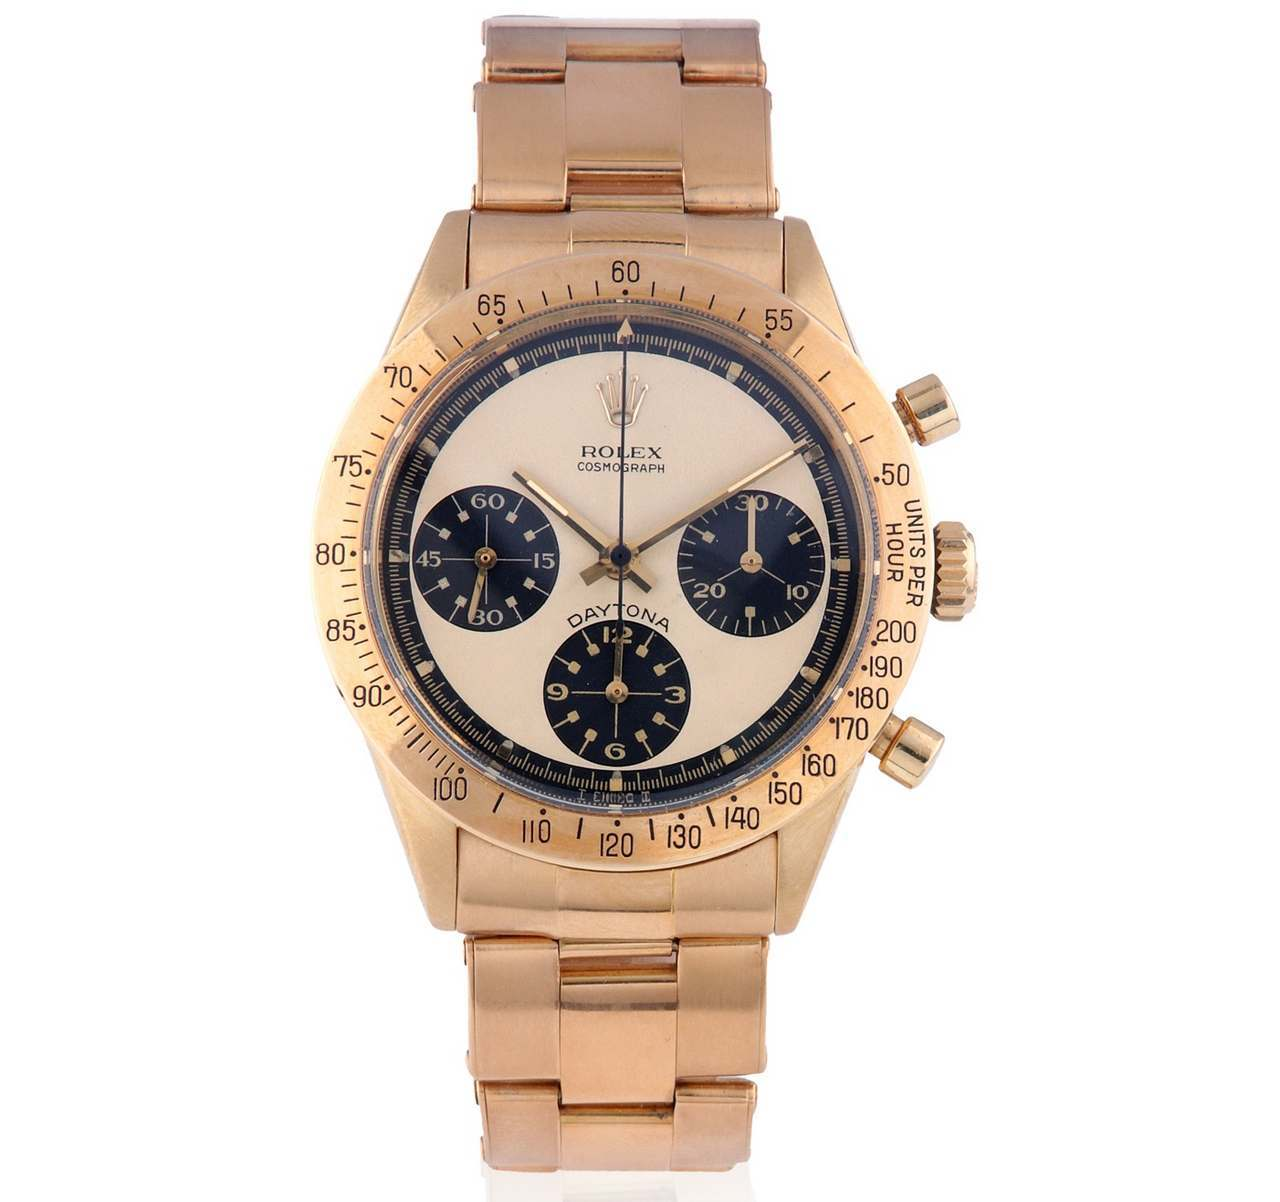 ROLEX DAYTONA PAUL NEWMAN 6239 18K GOLD BRITISH STAMP_source_bonhams_0-100